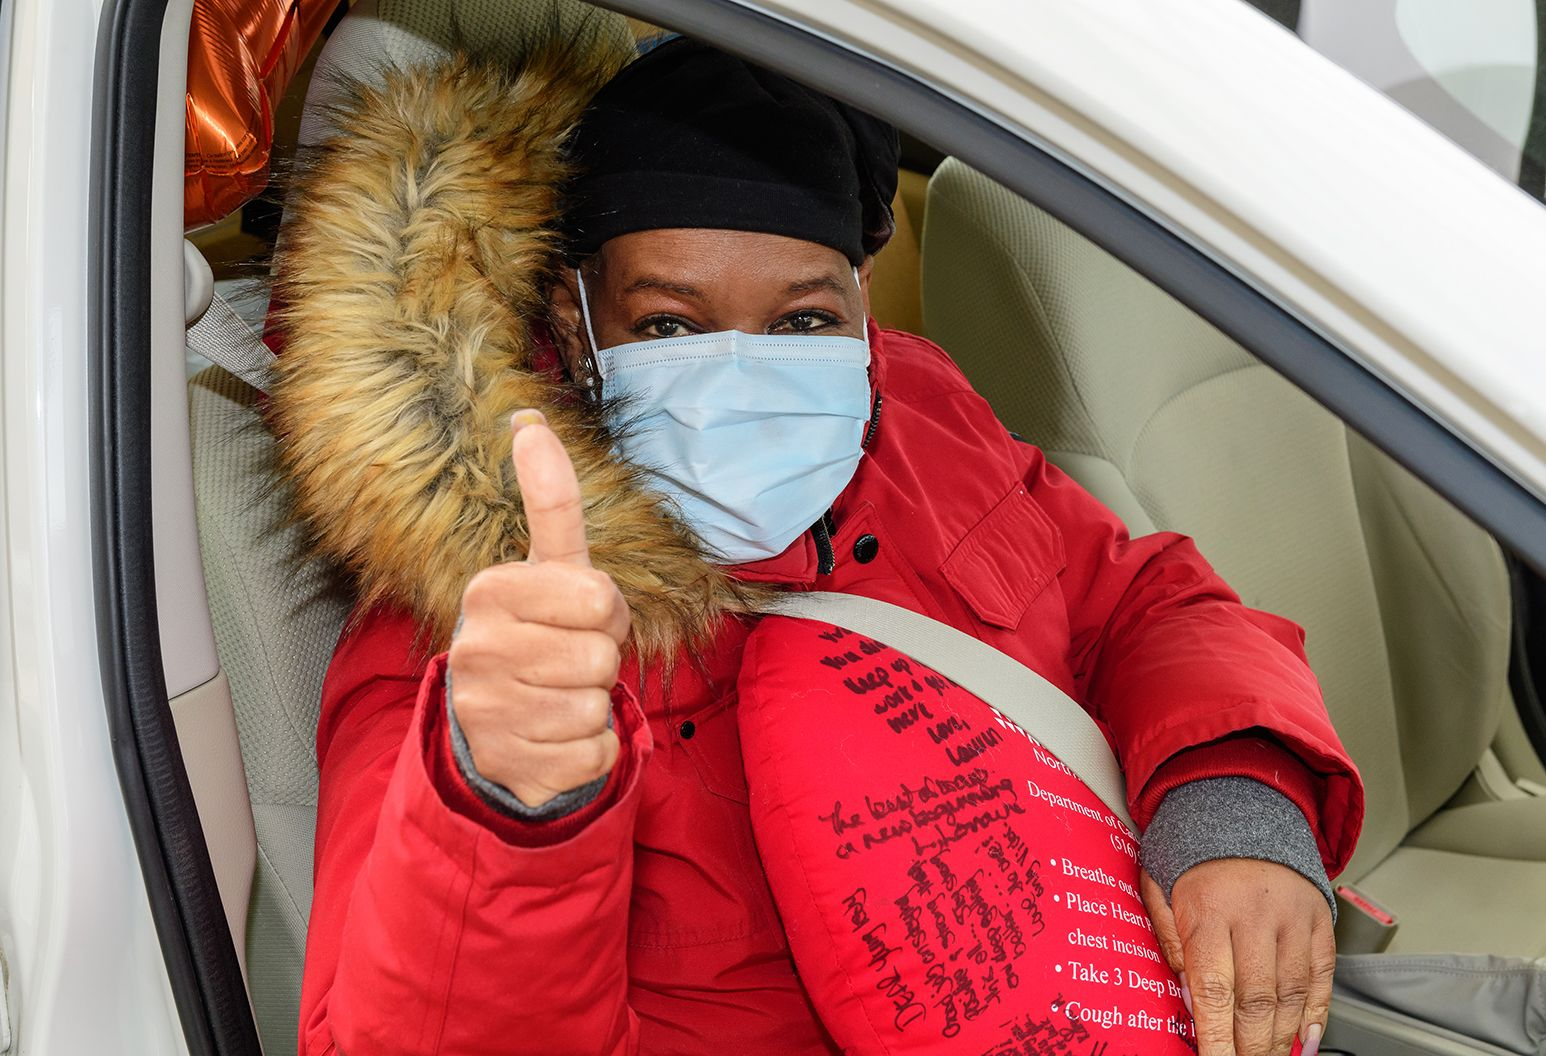 A woman in a black cap and red winter coat with a fur lined hood sits in a car. She has a red pillow against her chest and she gives the camera a thumbs up.